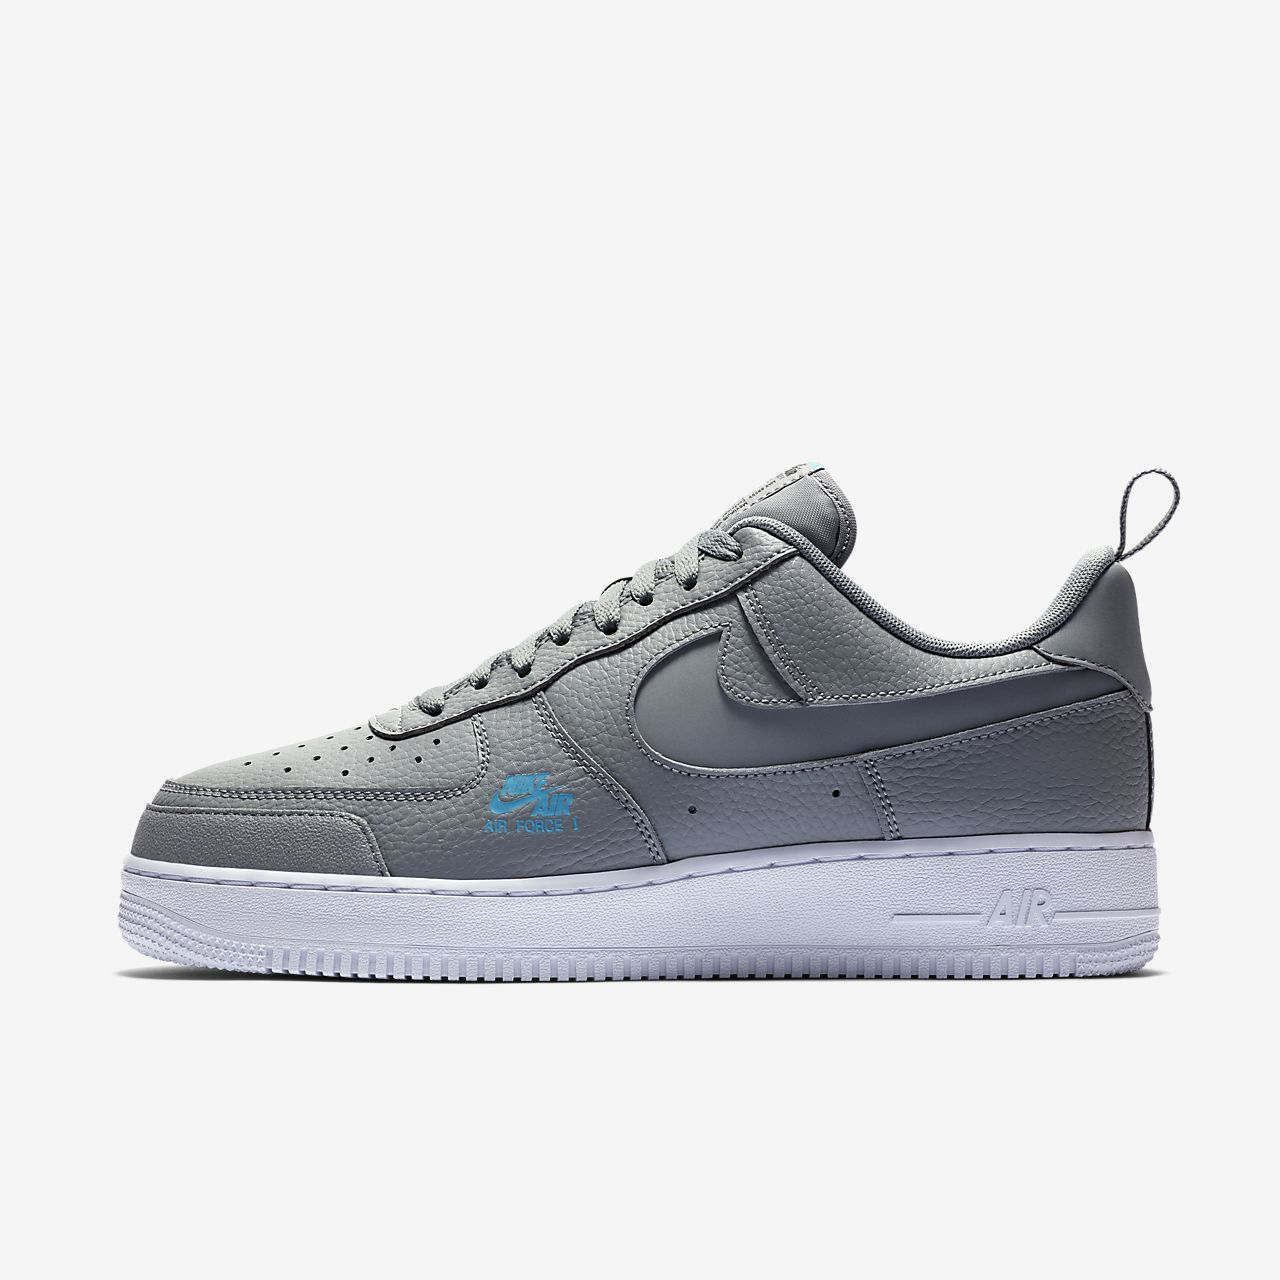 Nike Lifestyle Shoes Australia Cheap,Air Force 1 07 Premium